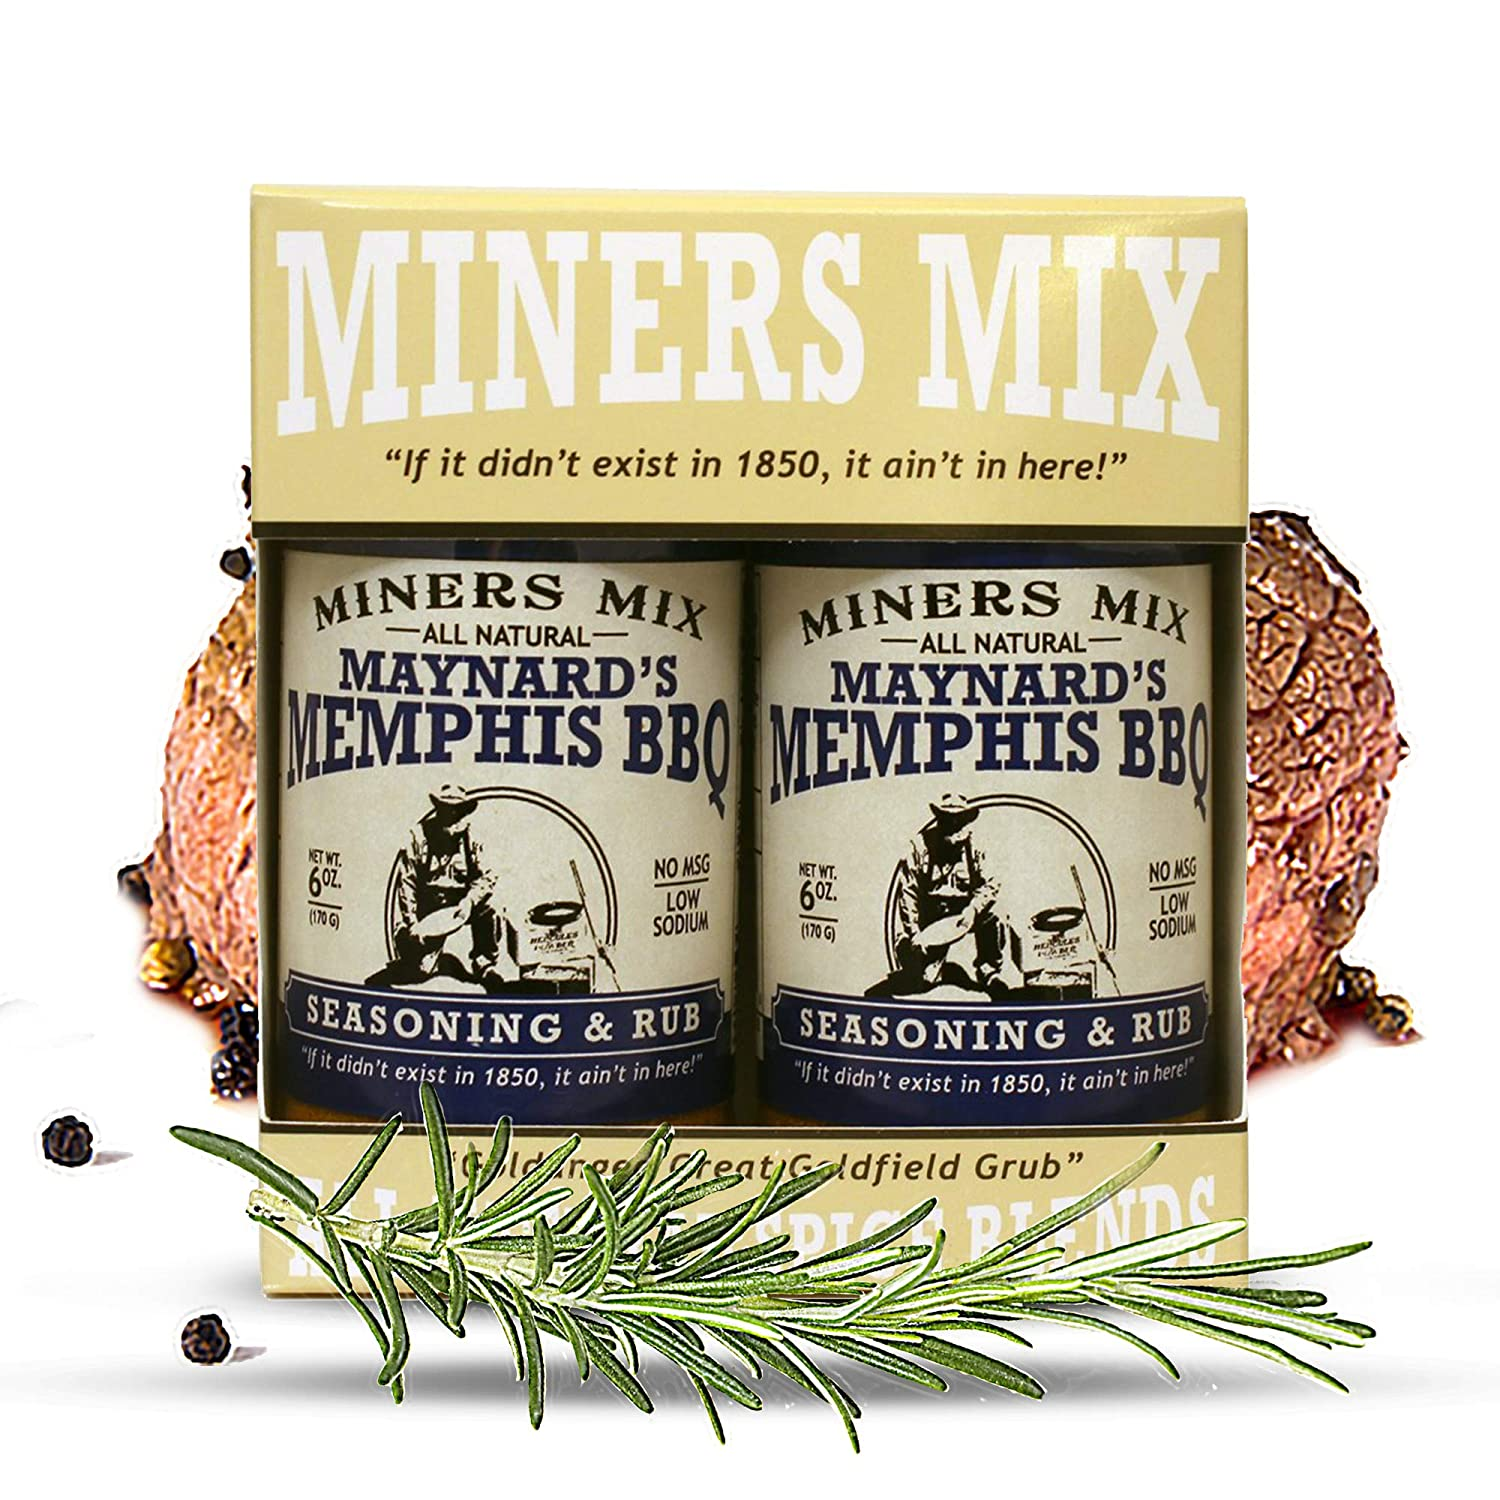 Miners Mix Maynard's Memphis Championship BBQ DRY Rub 2 Pack: Seconds Please! Big Bold Flavor for Low N Slow Smoking Ribs, Butts, Pulled Pork, Brisket, or Beef. No MSG, Low Salt, All Natural.